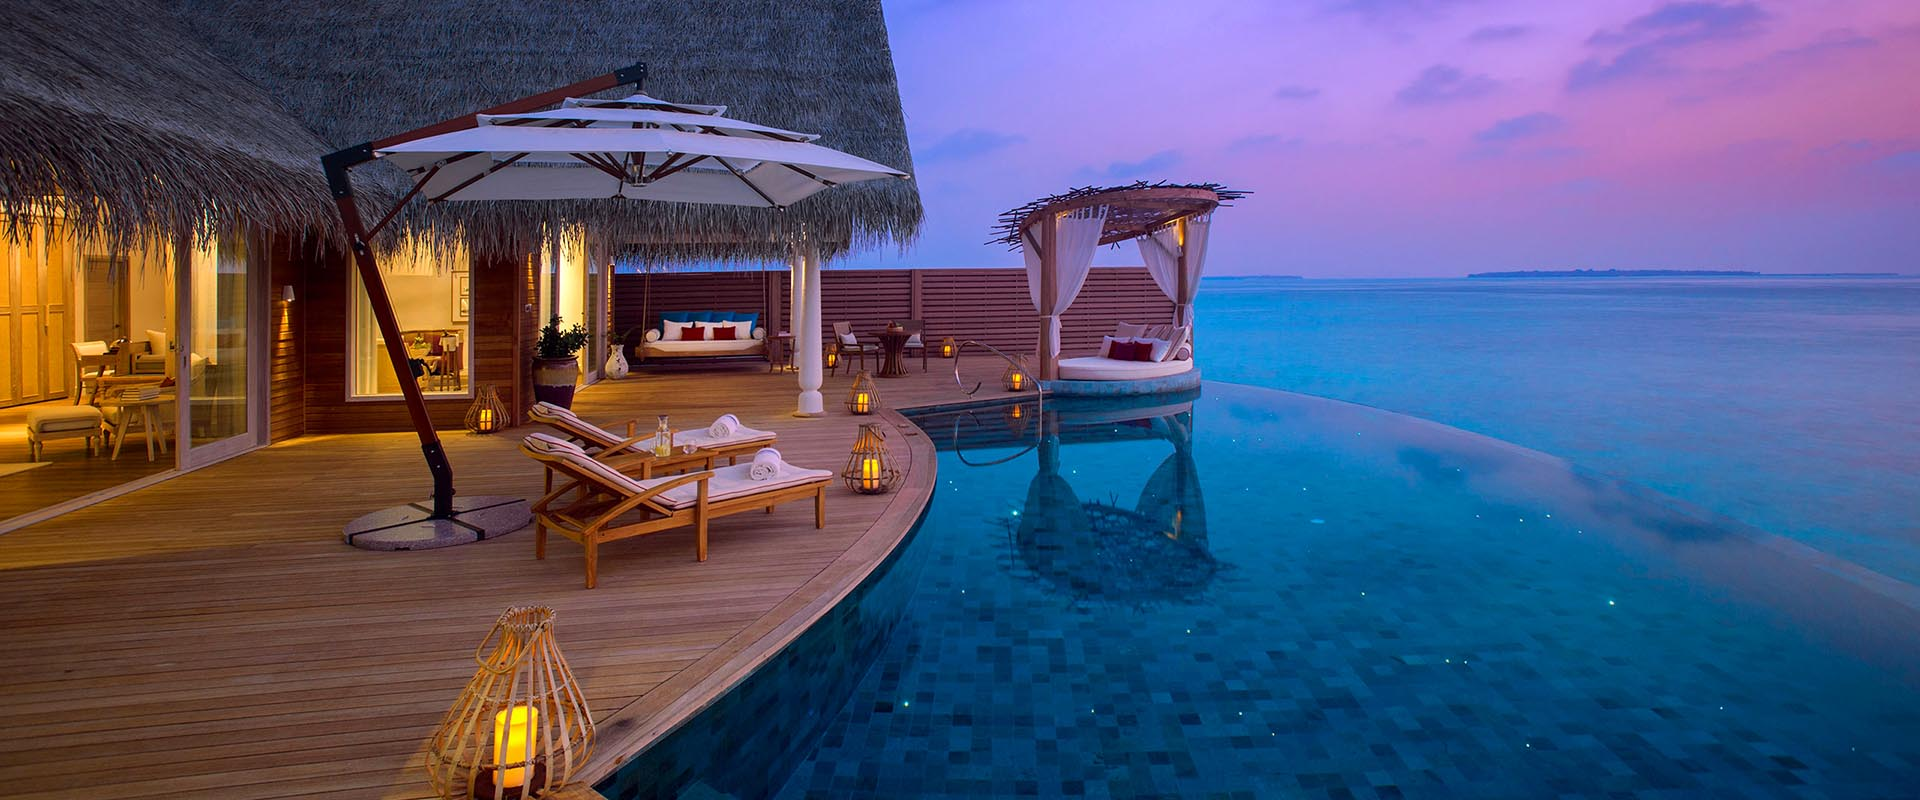 Maldives Family Holiday Resorts